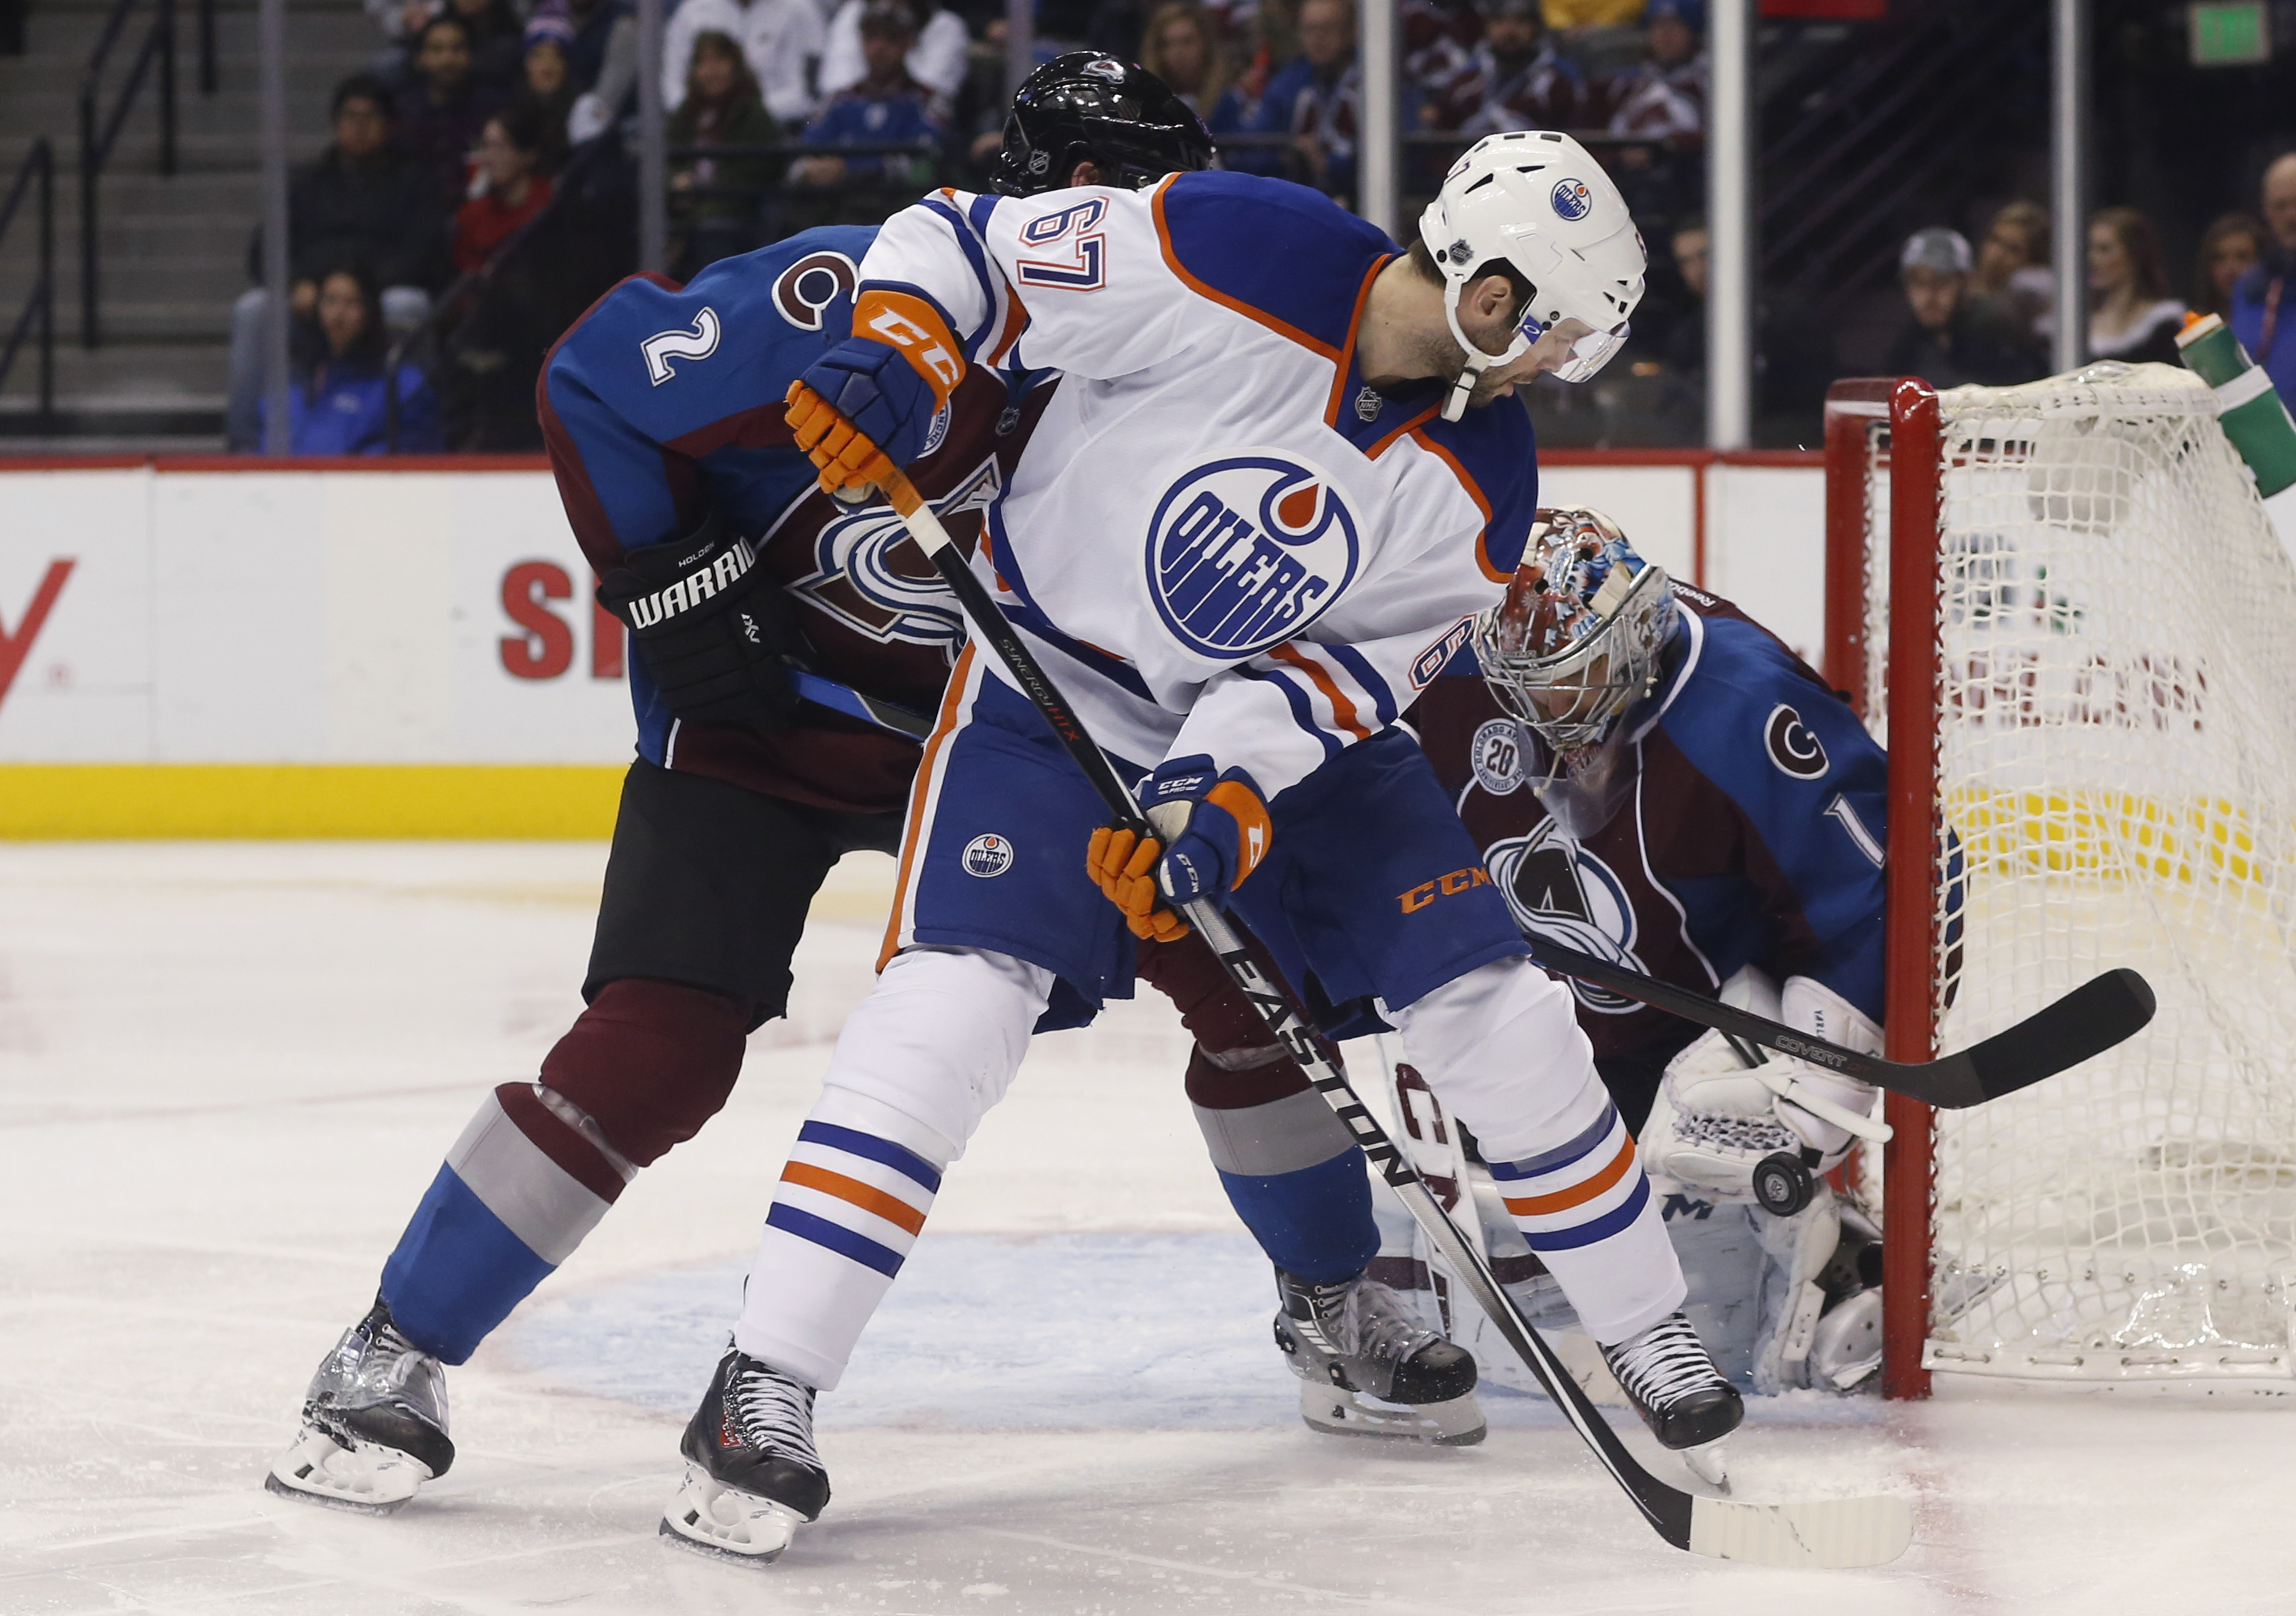 Edmonton Oilers left wing Benoit Pouliot, front, redirects a shot past Colorado Avalanche defenseman Nick Holden, left, toward goalie Semyon Varlamov, of Russia, during the third period of an NHL hockey game Saturday, Dec. 19, 2015, in Denver. Colorado wo